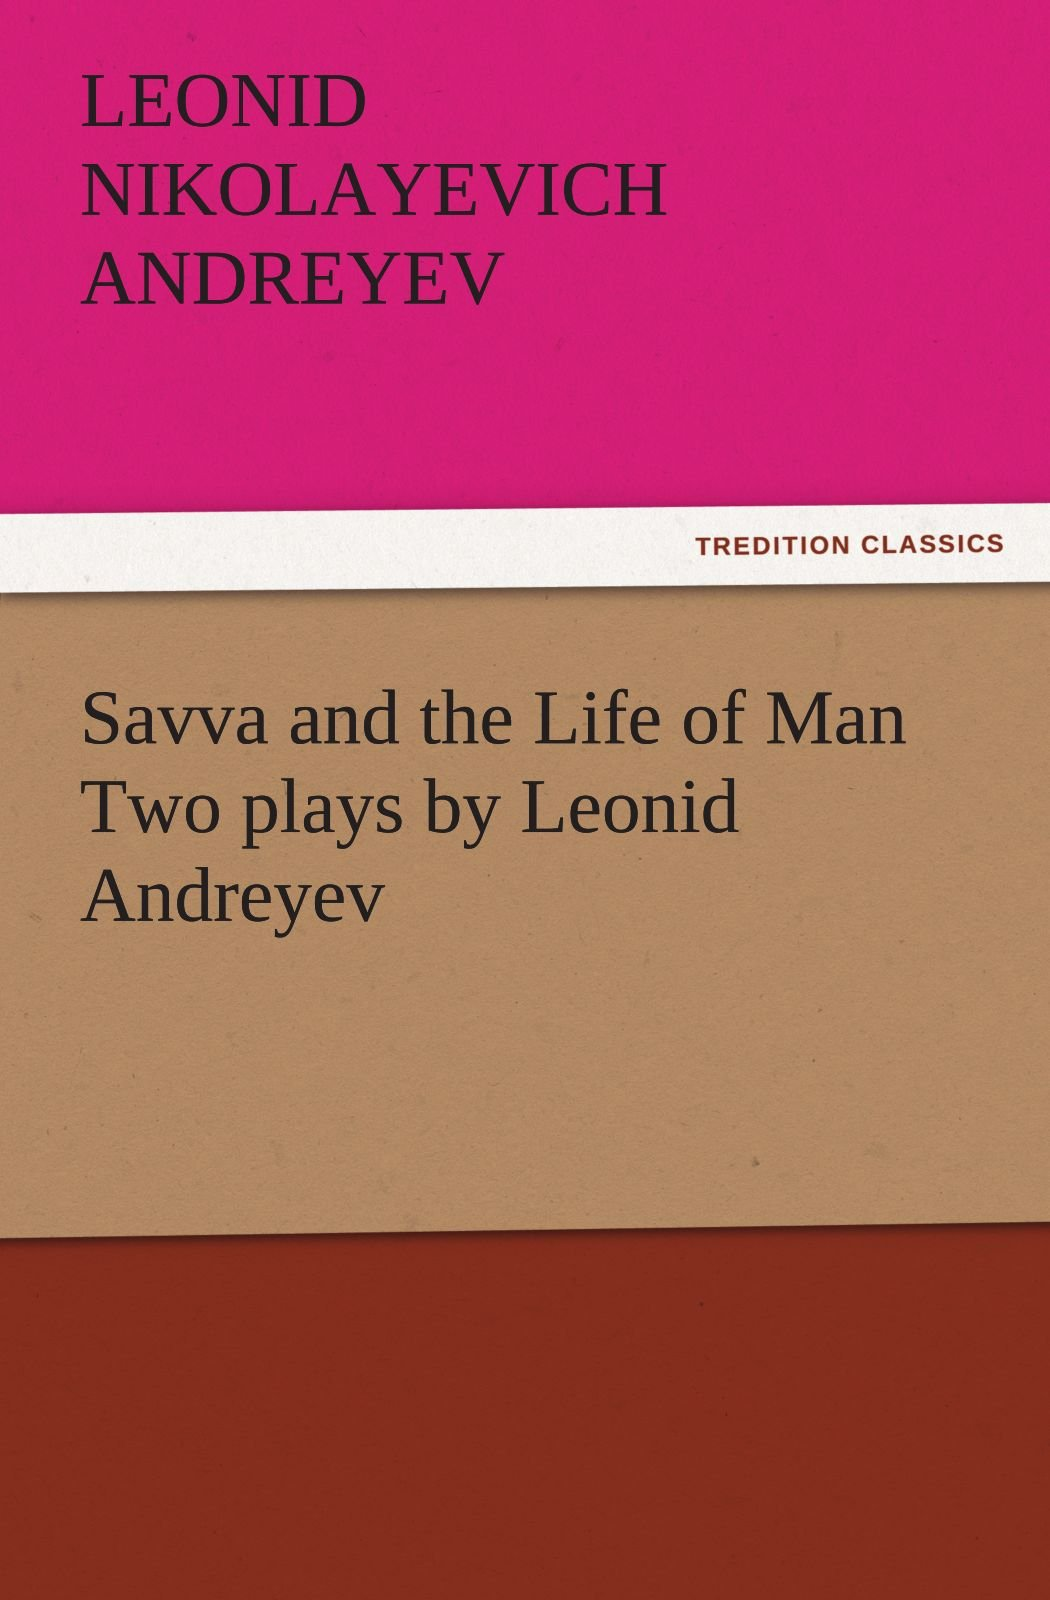 Savva and the Life of Man Two plays by Leonid Andreyev (TREDITION CLASSICS) PDF